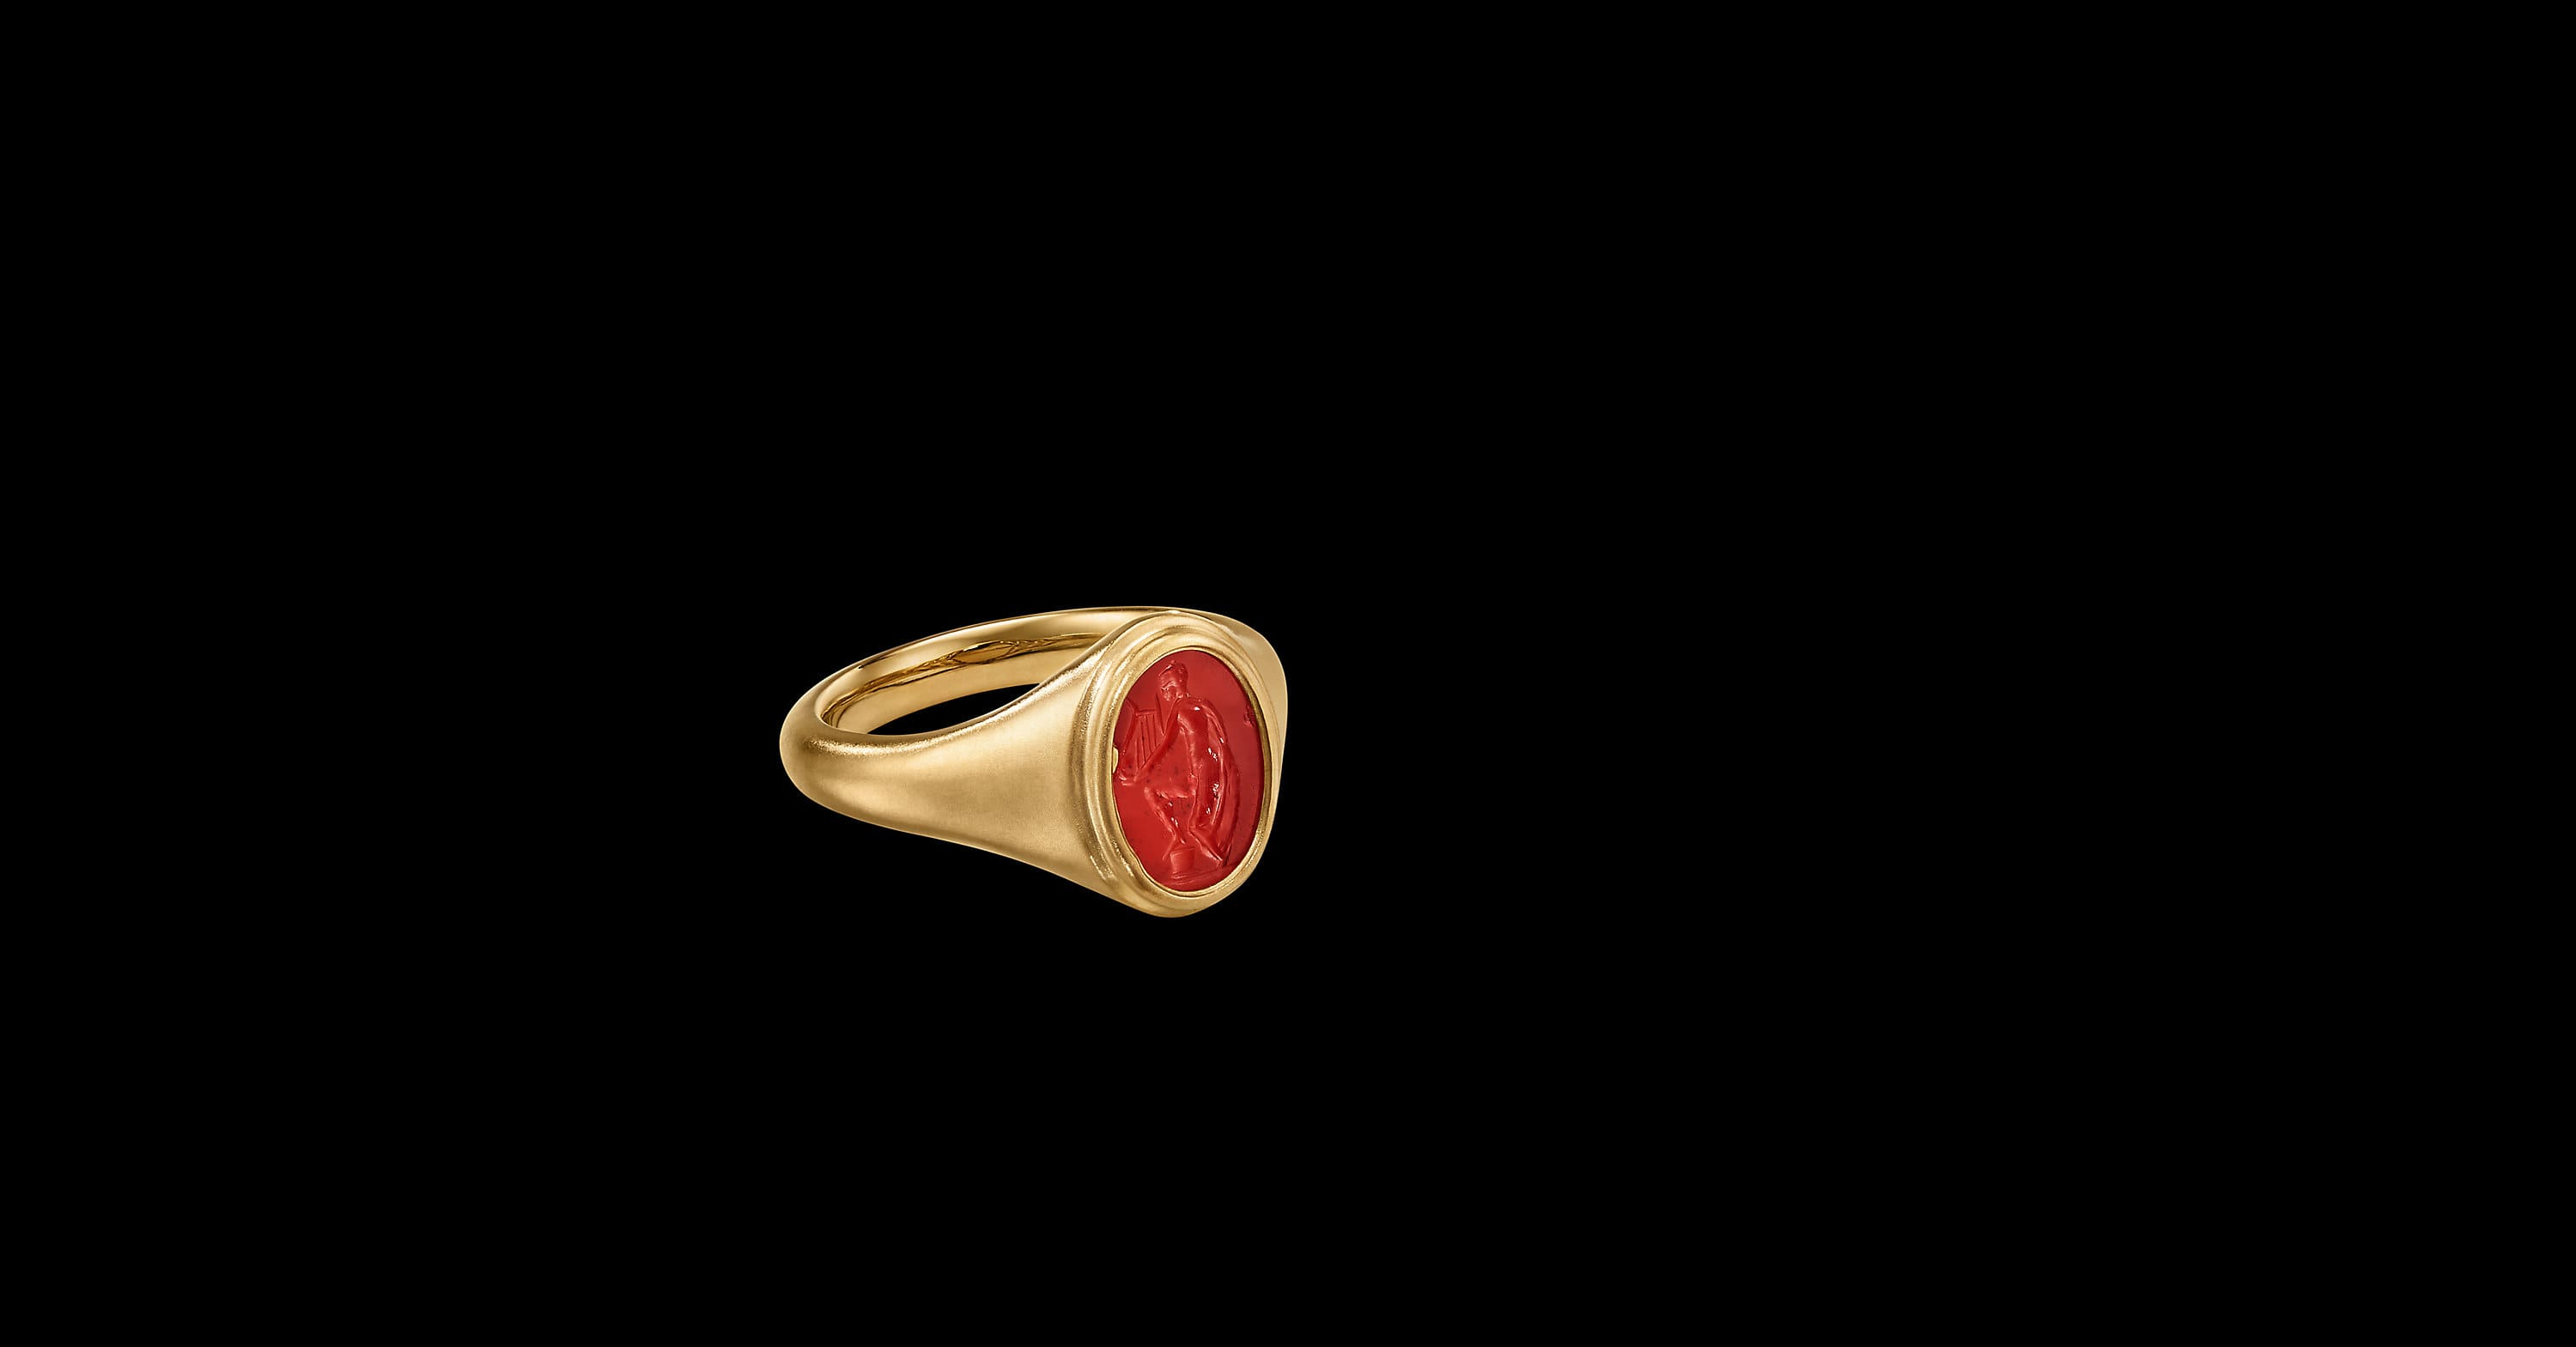 EY SignatureIntaglio Ring in 22K Yellow Gold with Carnelian